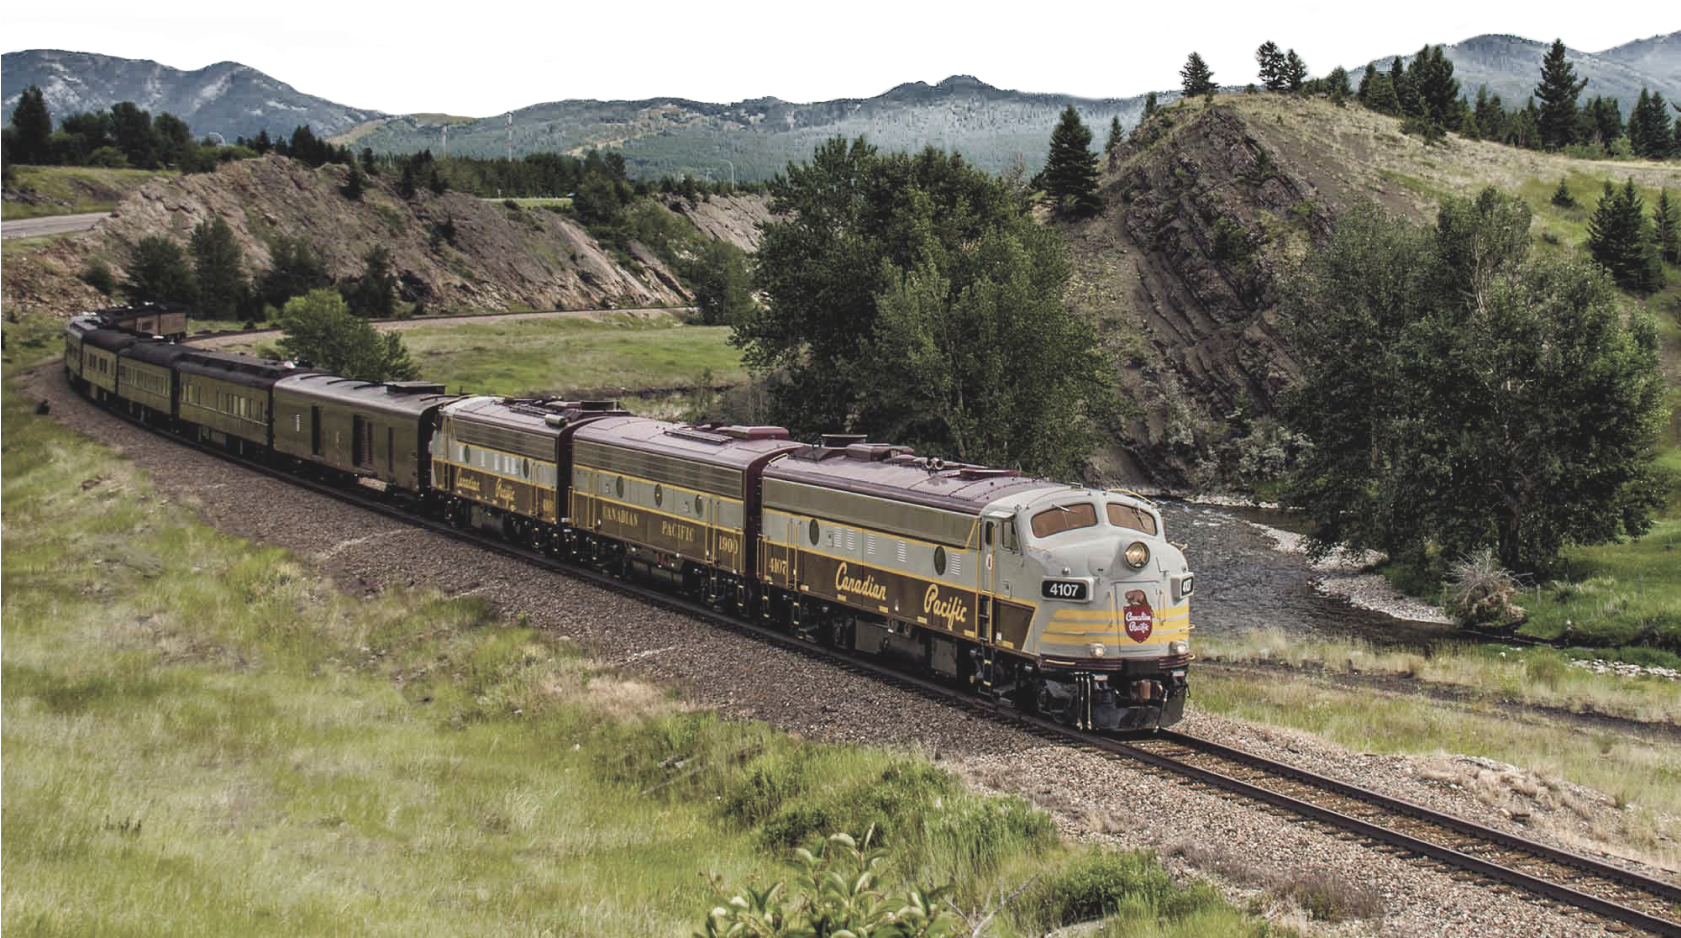 A Royal Canadian Pacific train passing by.